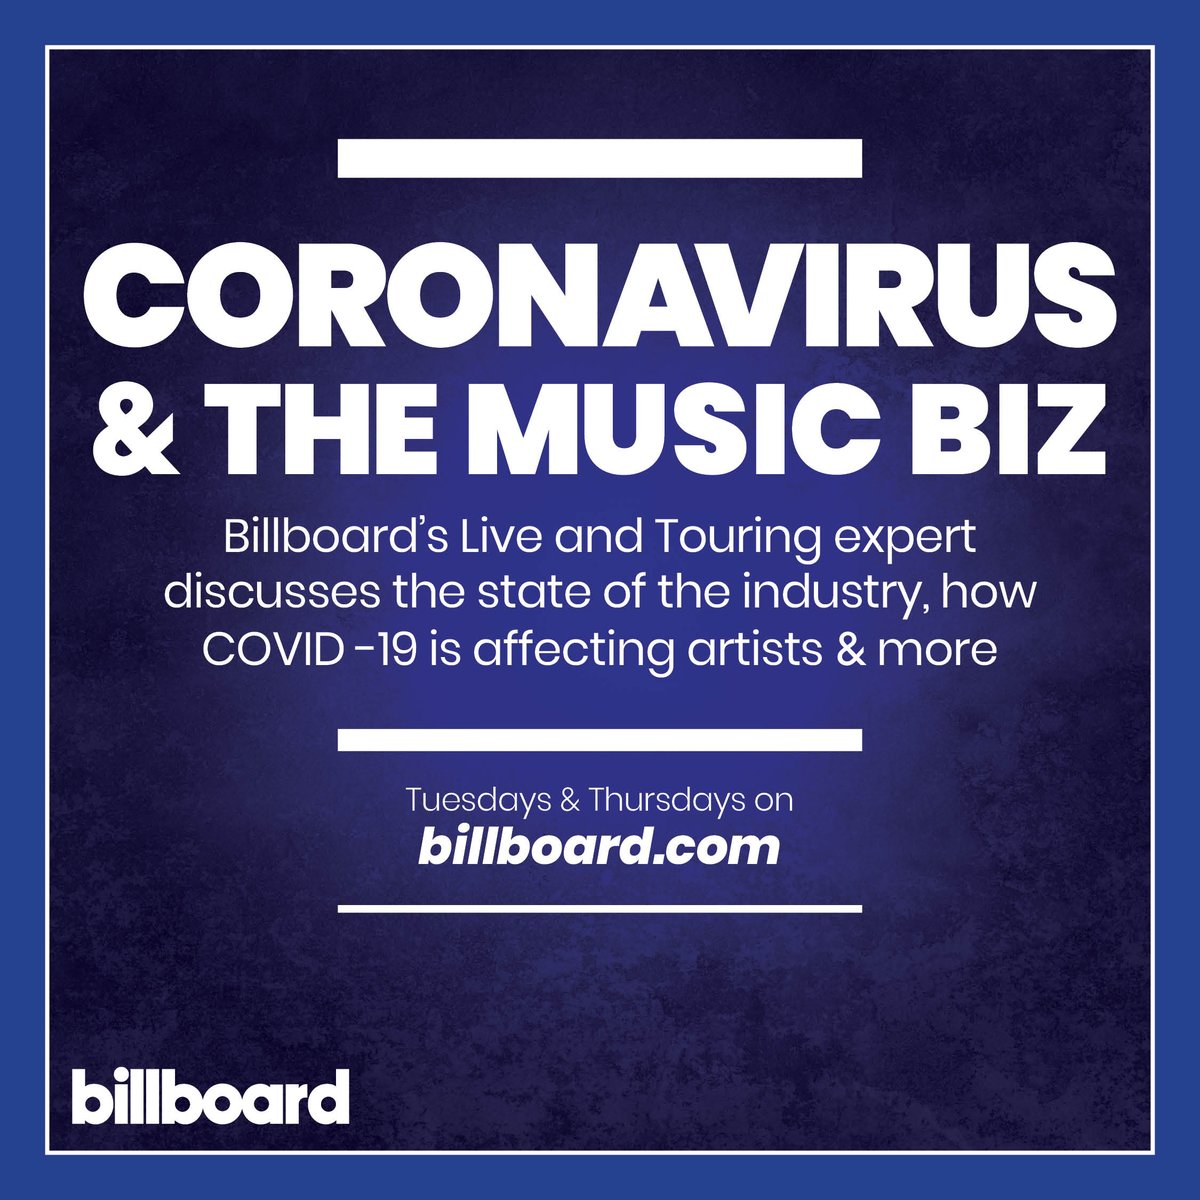 Do you have questions about how the #coronavirus is affecting the music industry? 🤔  Submit them below and our touring & live entertainment expert will answer them live at 2 pm ET https://t.co/BqYkOEb5tZ https://t.co/NUI4gdzeNZ